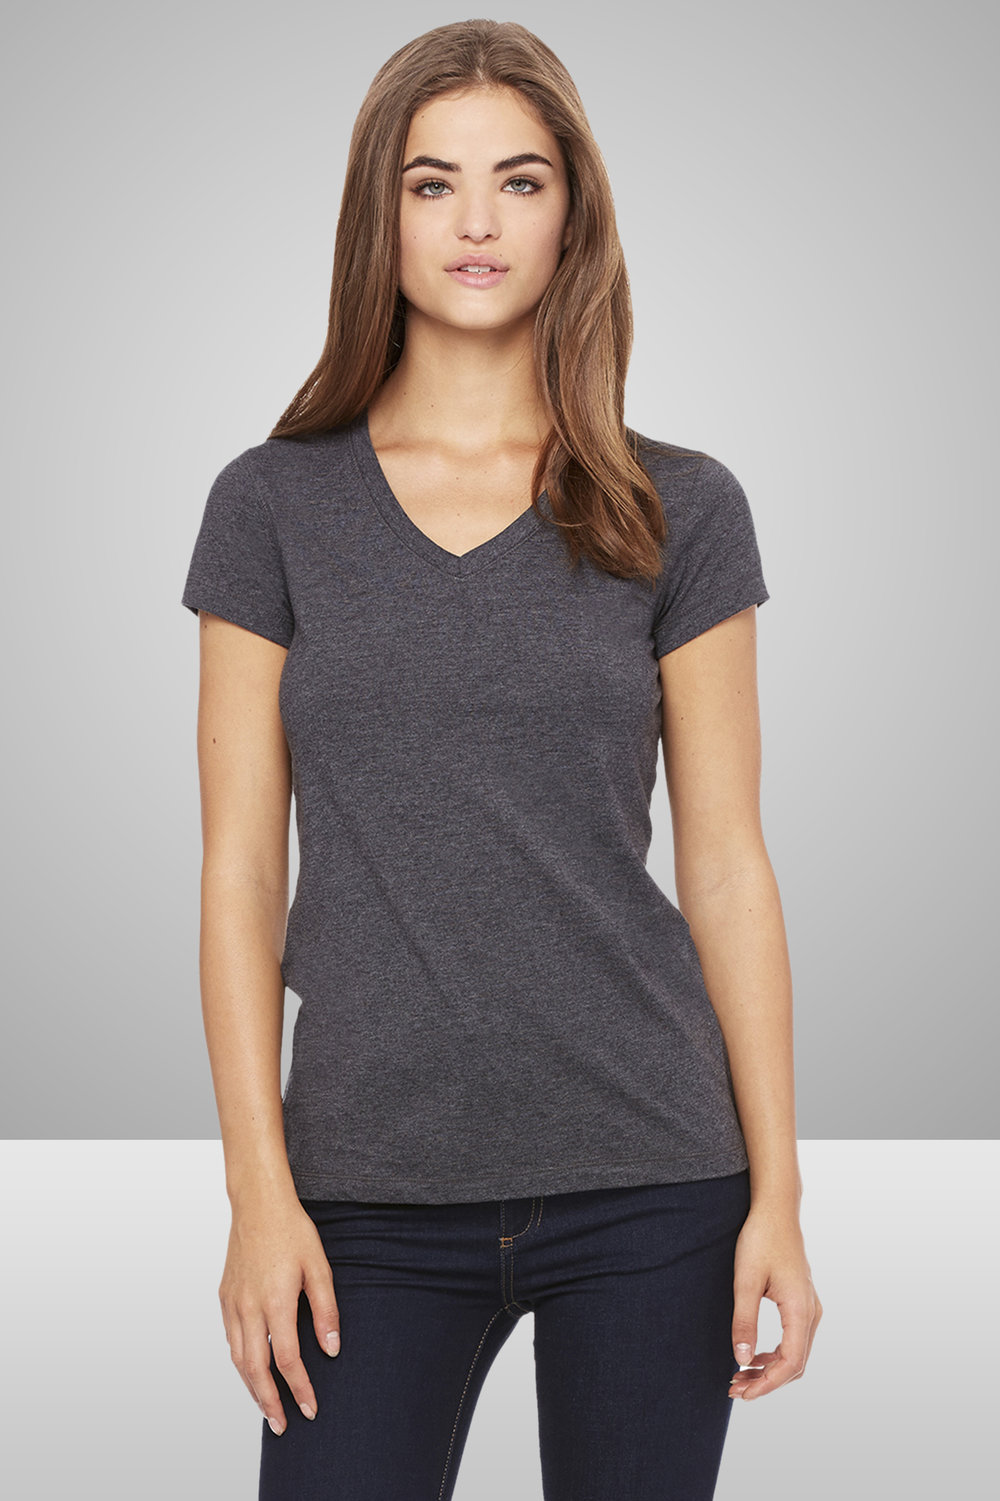 Bella+Canvas Ladies' Jersey Short-Sleeve V-Neck T-Shirt    $11.55 each for 25 items one color front or back